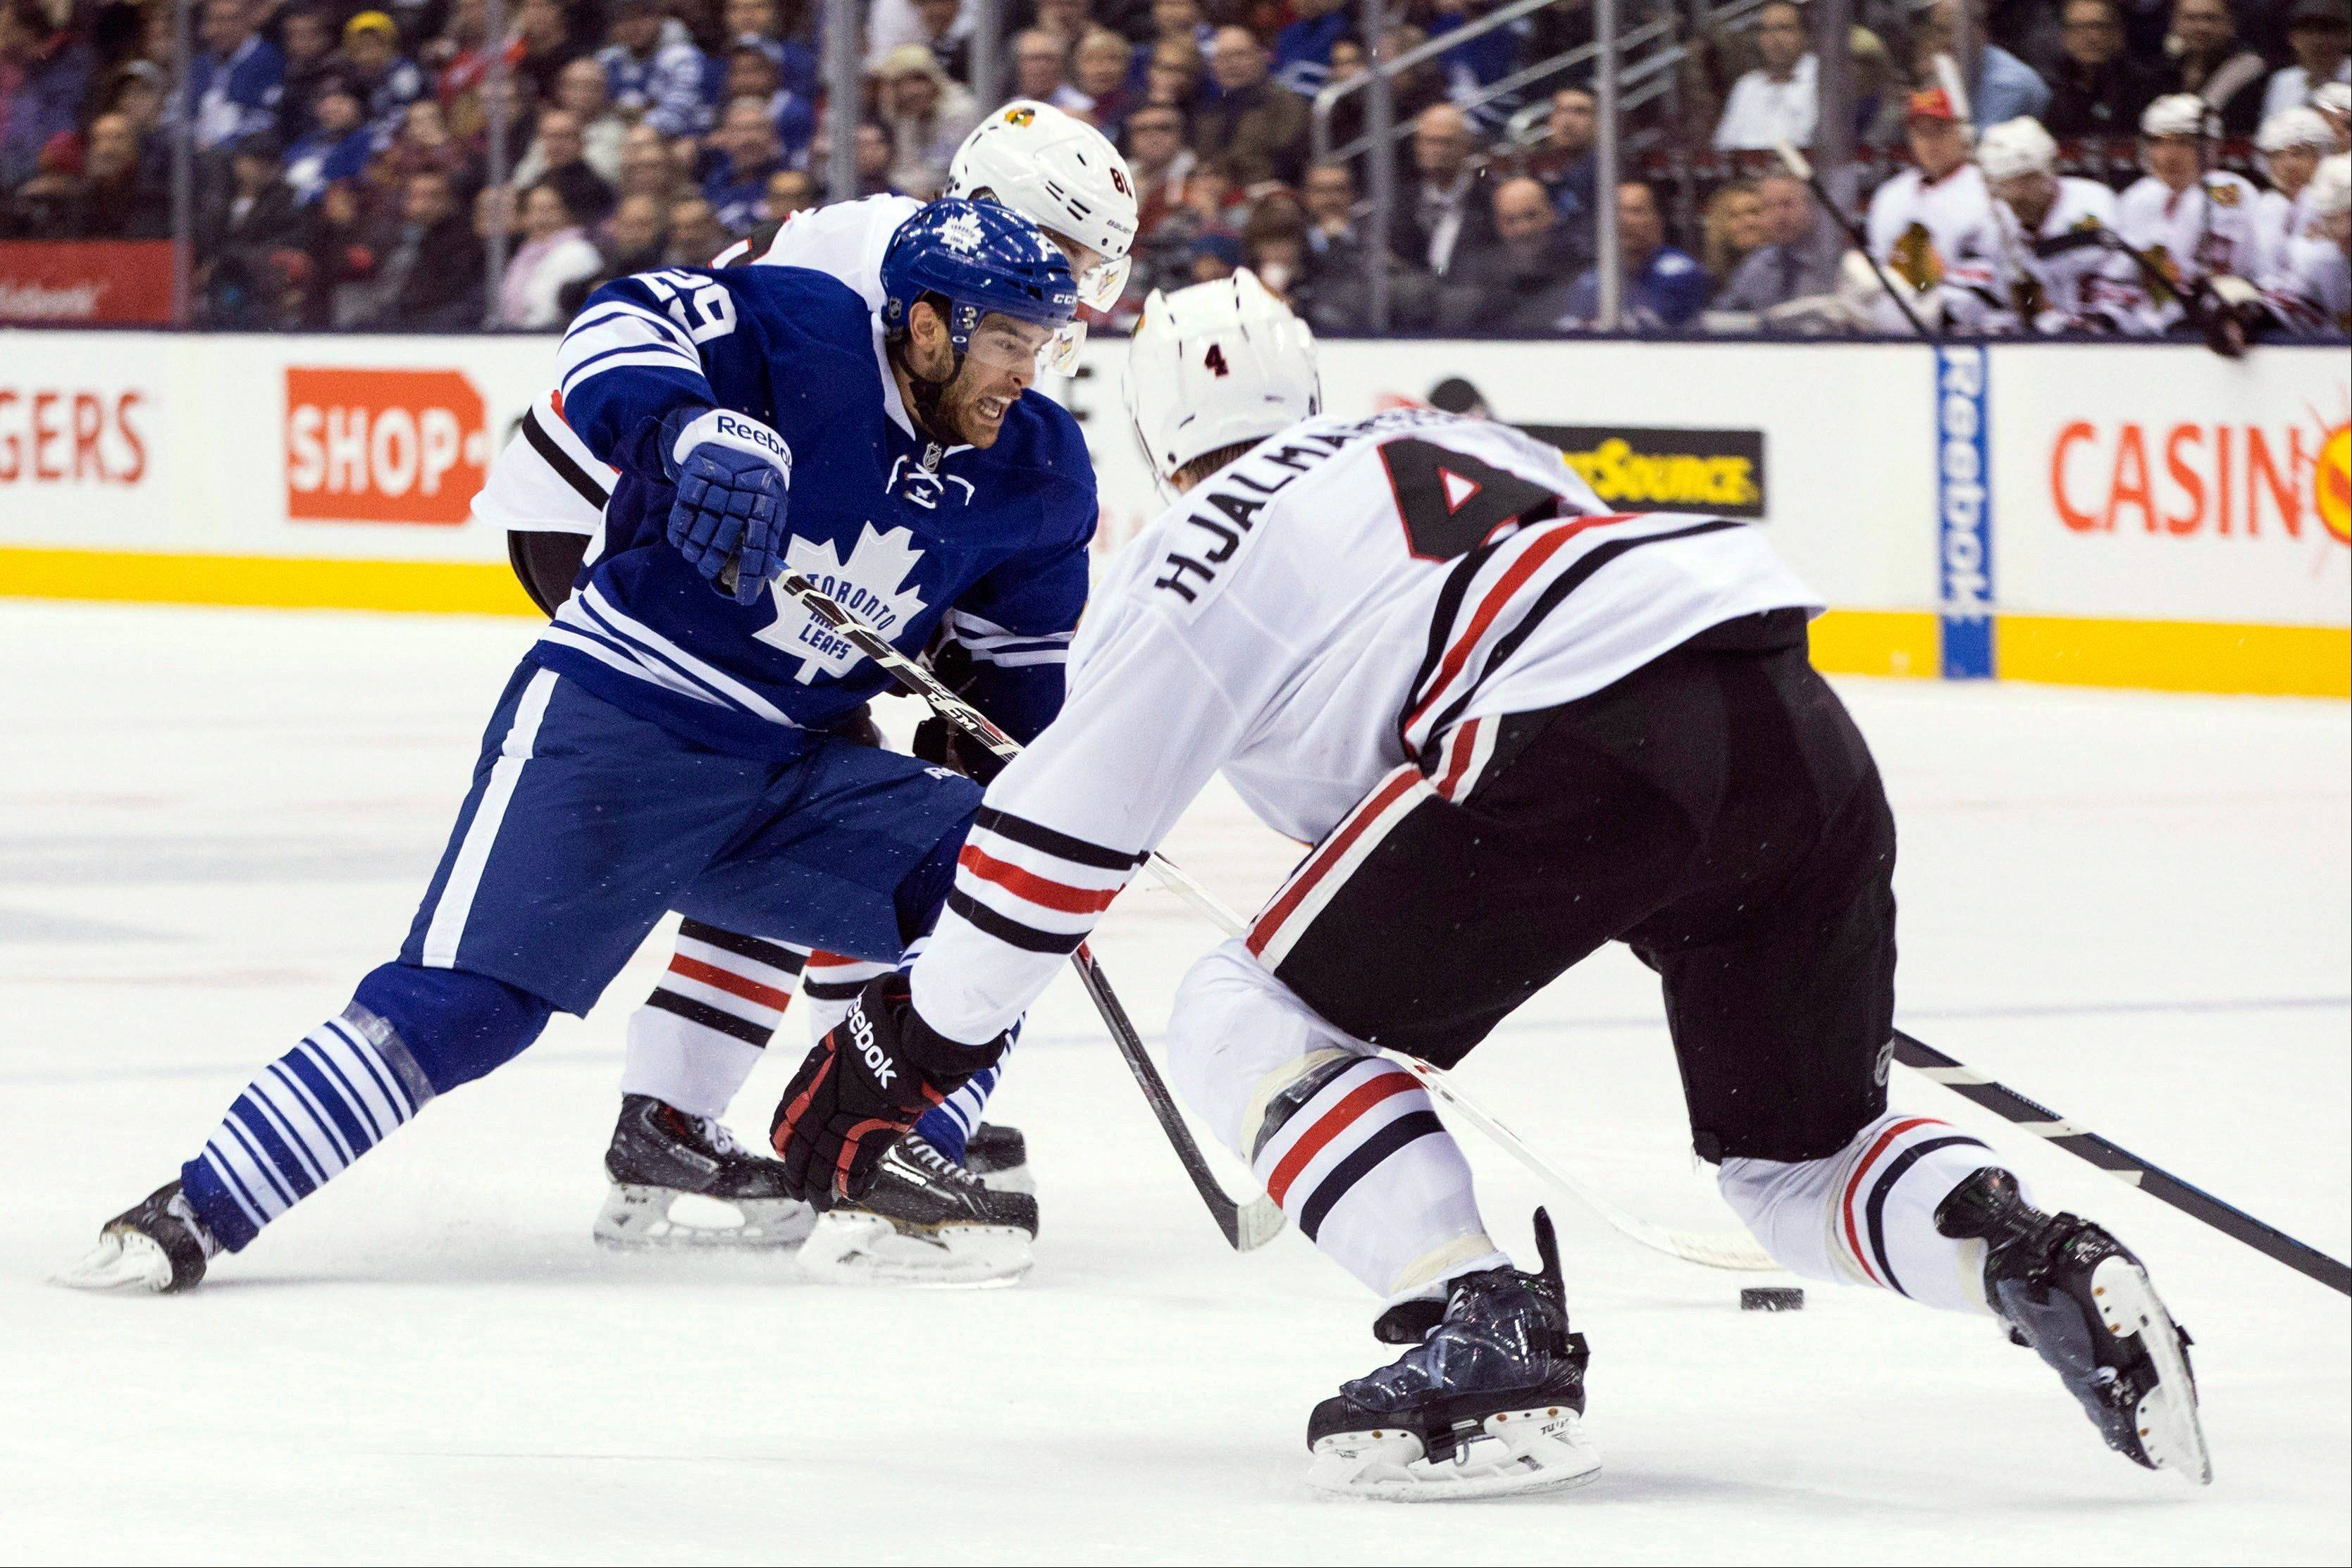 Toronto Maple Leafs� Jerry D�Amigo, left, battles for the puck with Chicago Blackhawks� Marian Hossa, back, as Niklas Hjalmarsson covers Saturday in Toronto. The Maple Leafs won 7-3.